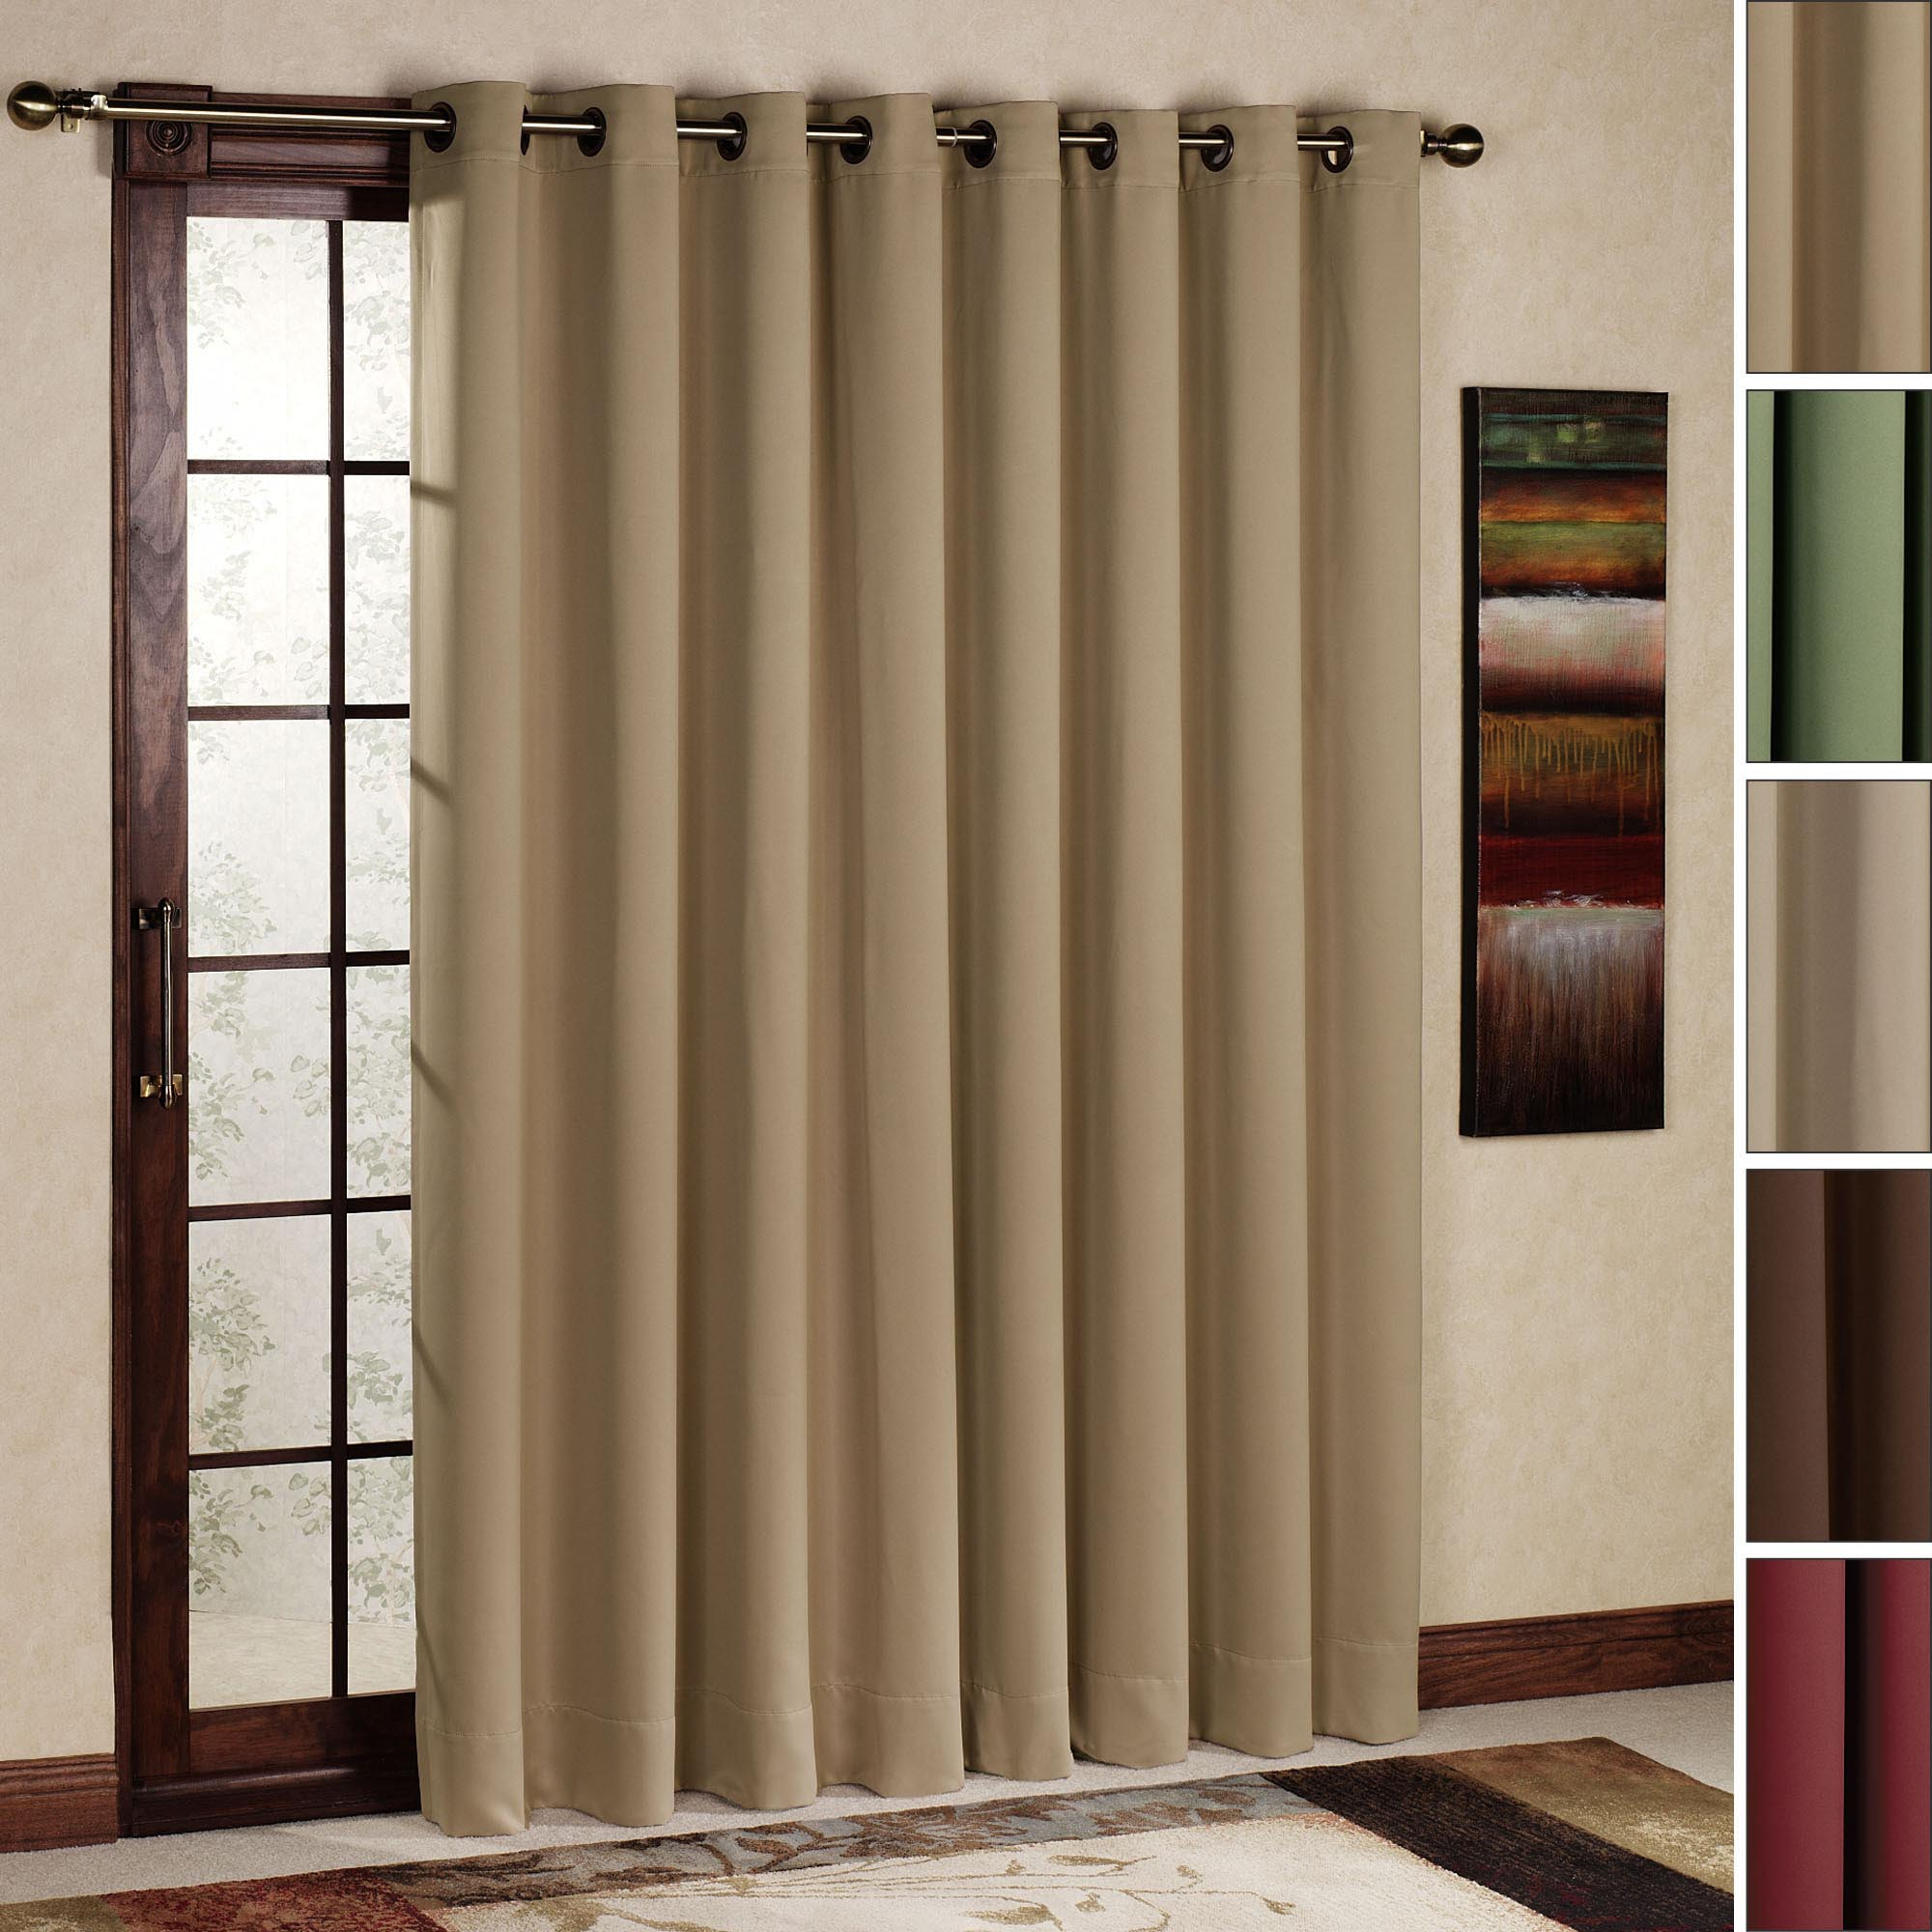 Curtain Rod Size For Sliding Glass Door | Window Treatments Design ...